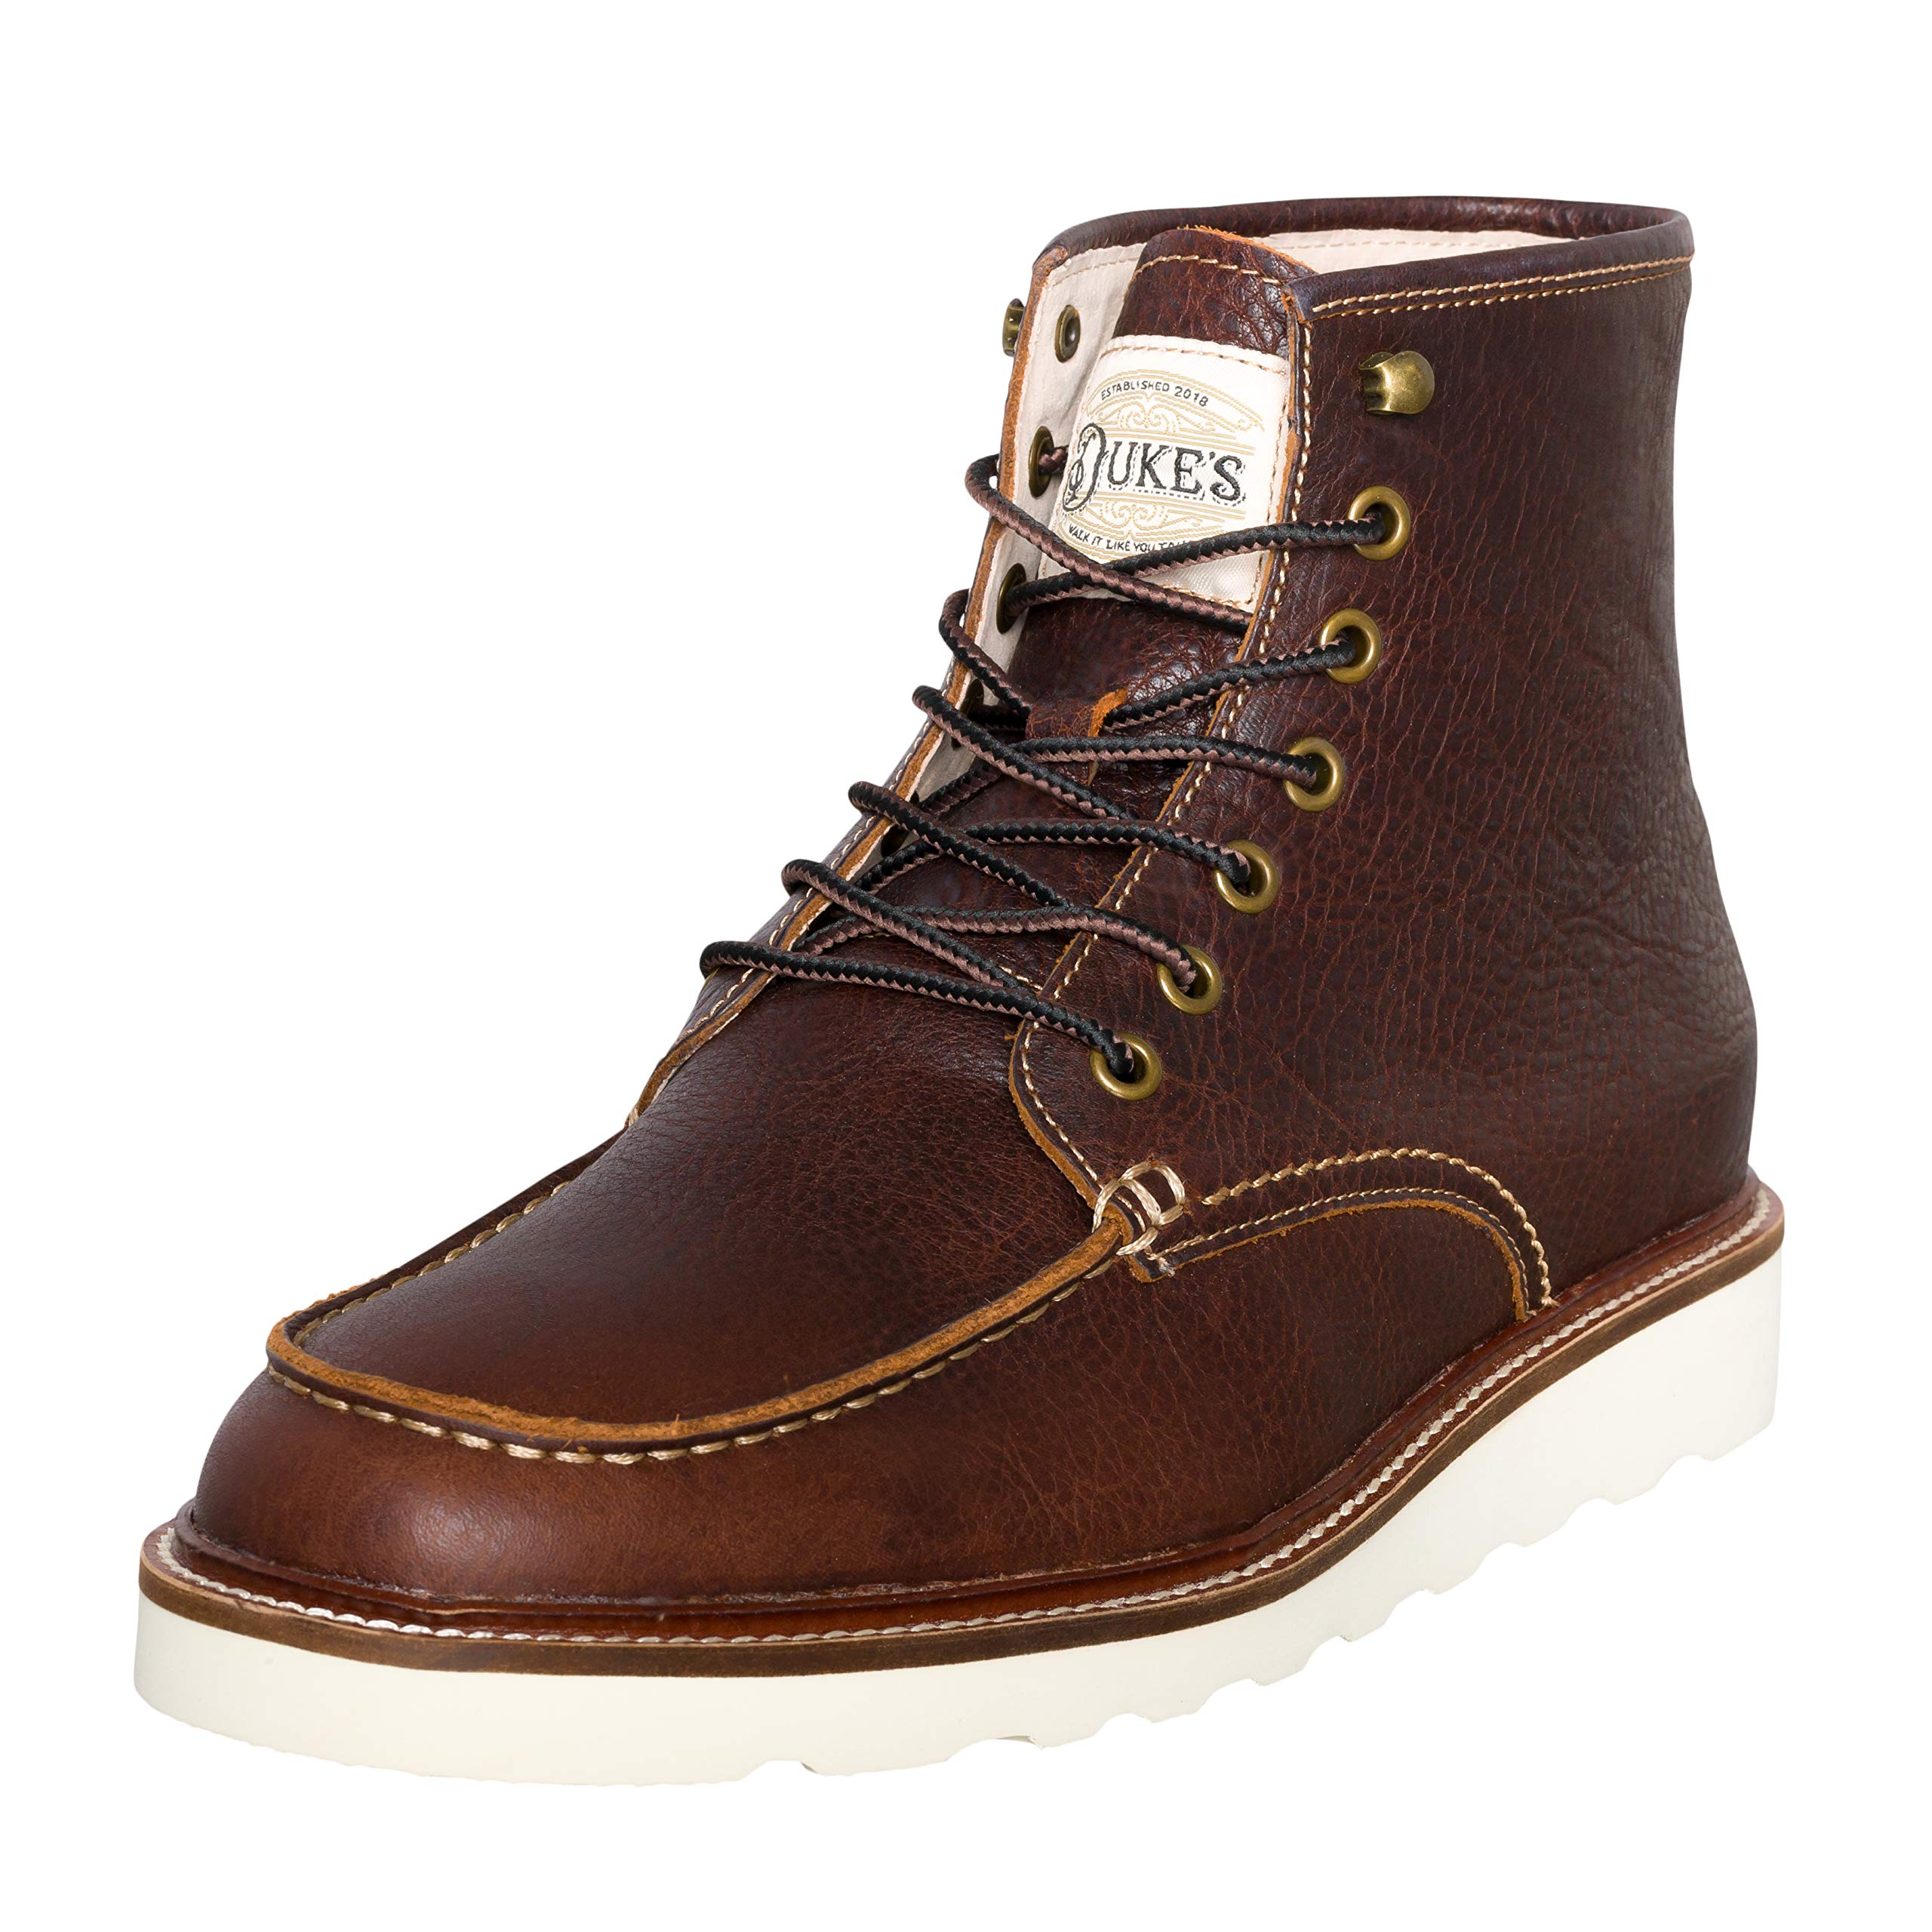 Duke's Mens Boots - Winslow Leather Boot with Premium Cushion Insole (Cognac) by Duke's